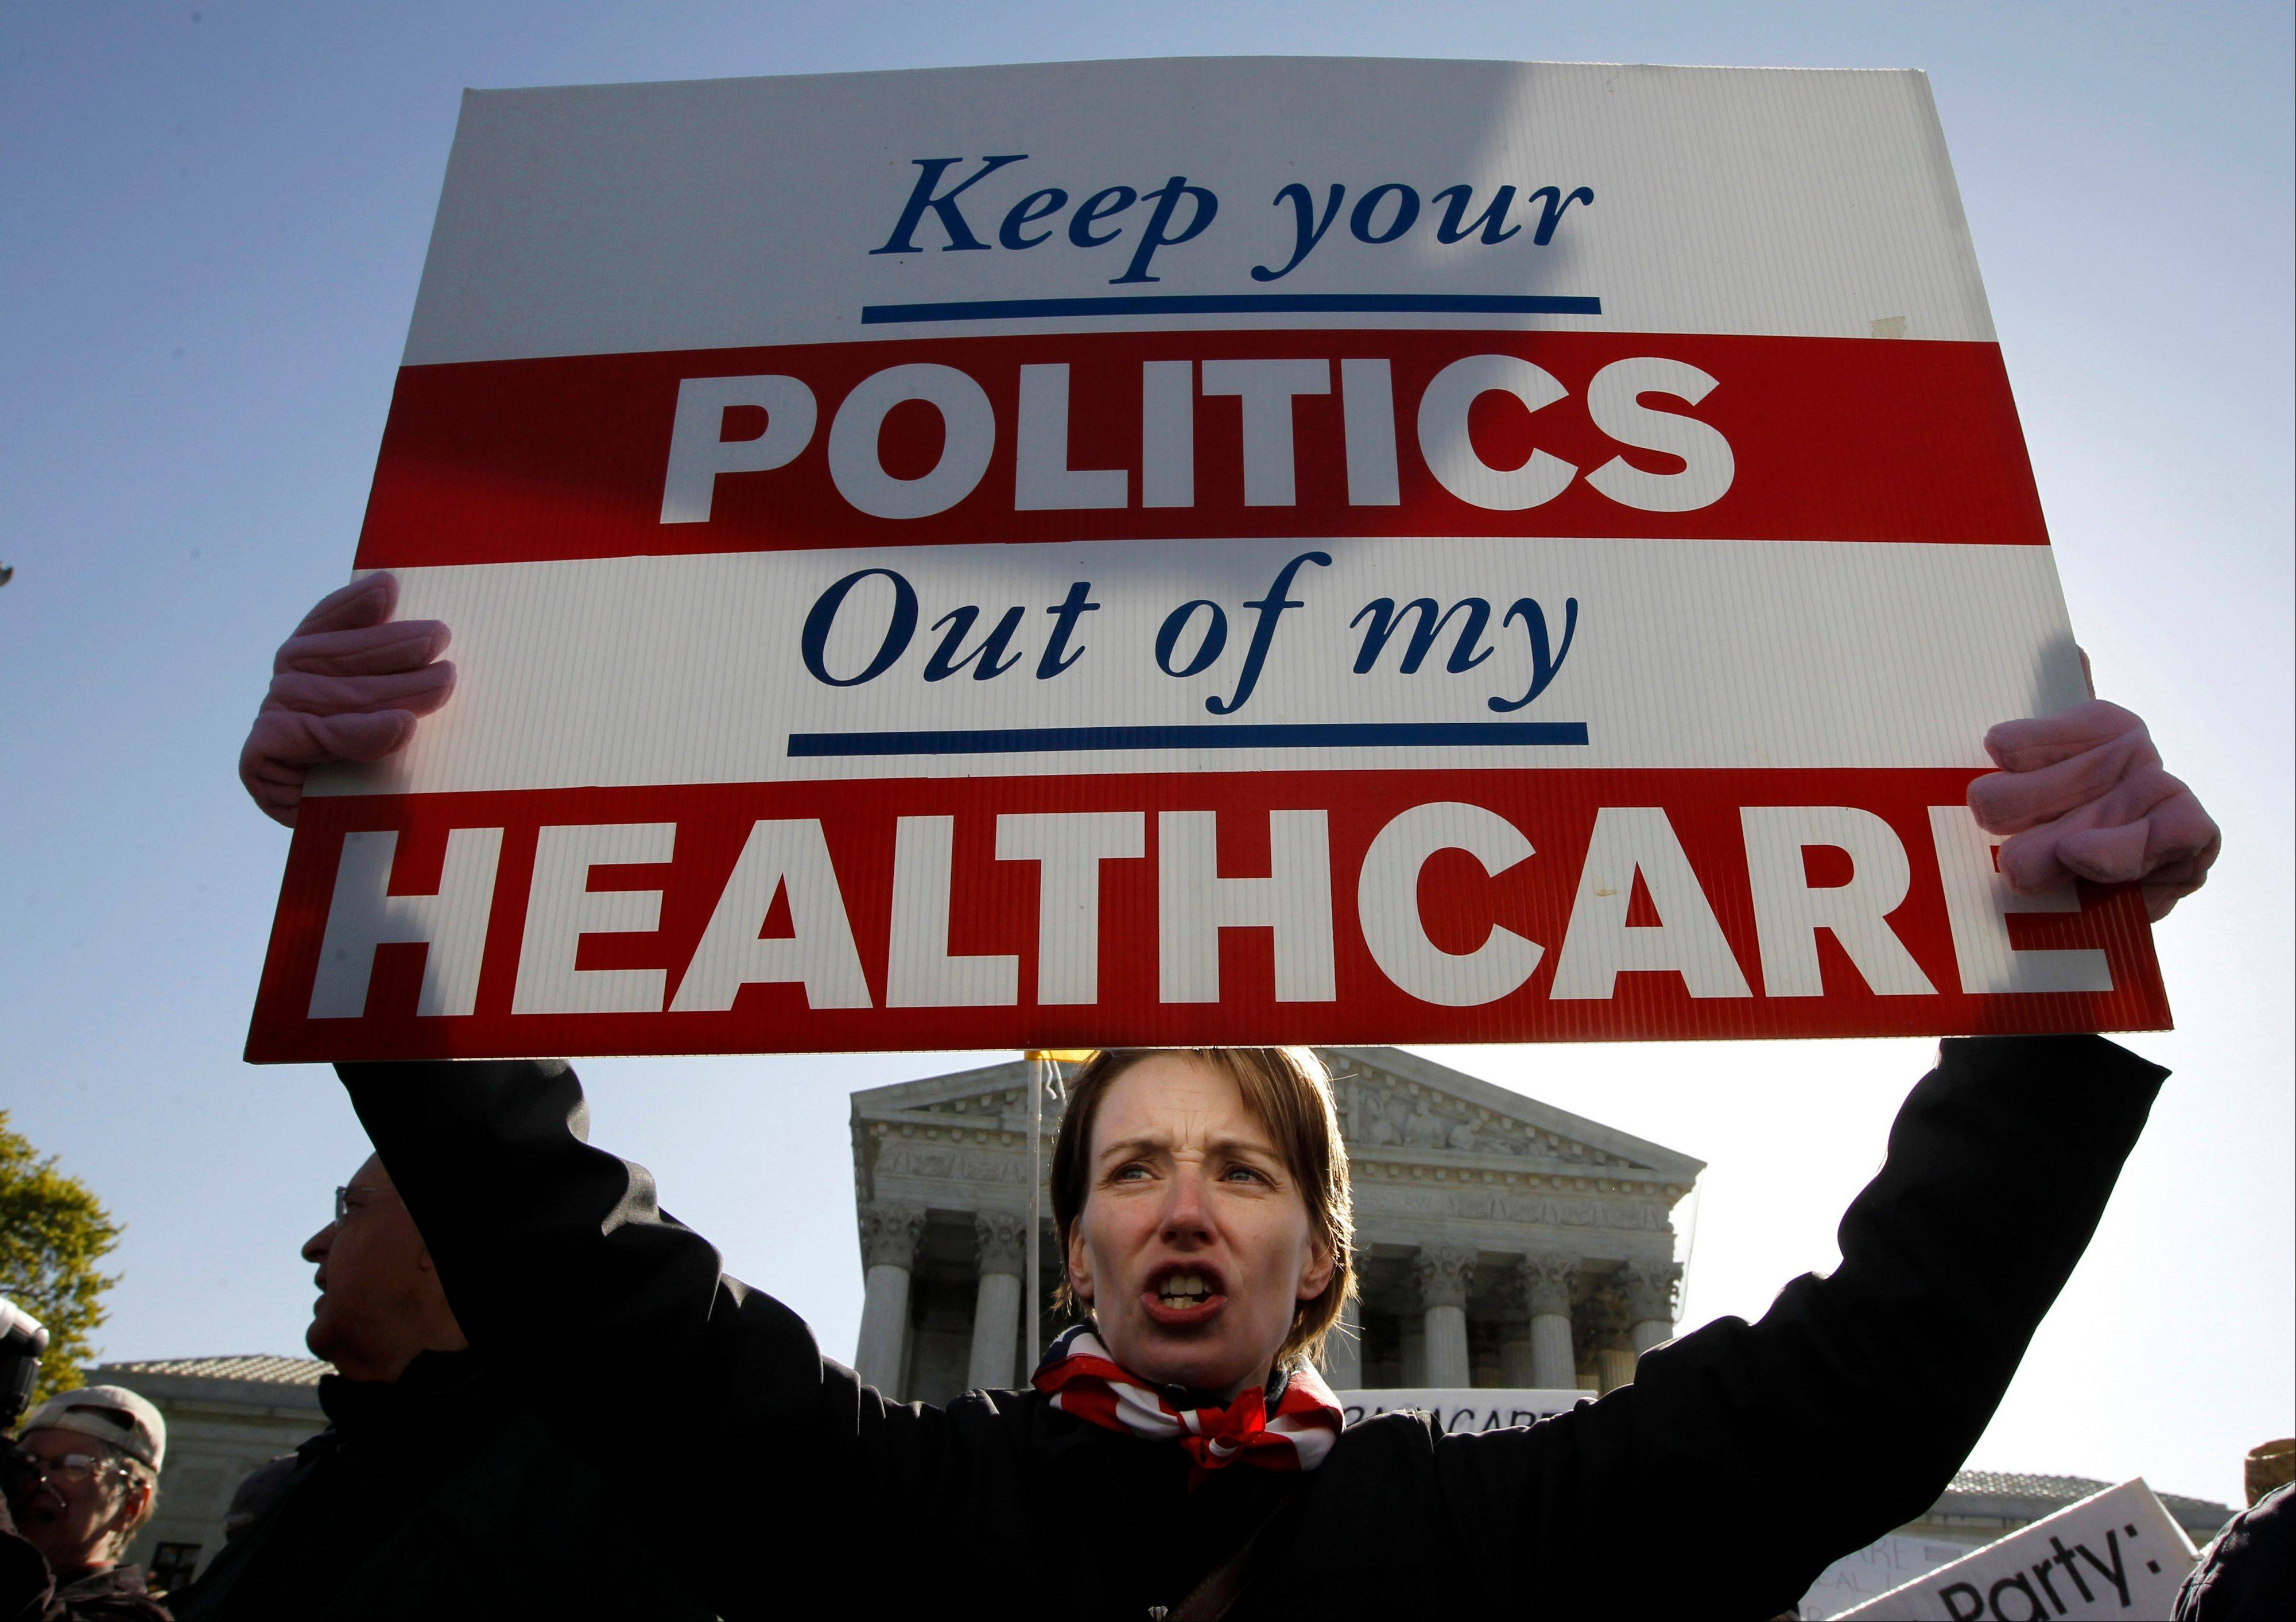 In this March 27, 2012, file photo, Amy Brighton of Medina, Ohio, who opposes health care reform, rallies in front of the Supreme Court in Washington. Health care was the defining political battle of President Barack Obama�s first term, and _ after the economy_ it remains his most complicated policy challenge at home, central to his place in history.